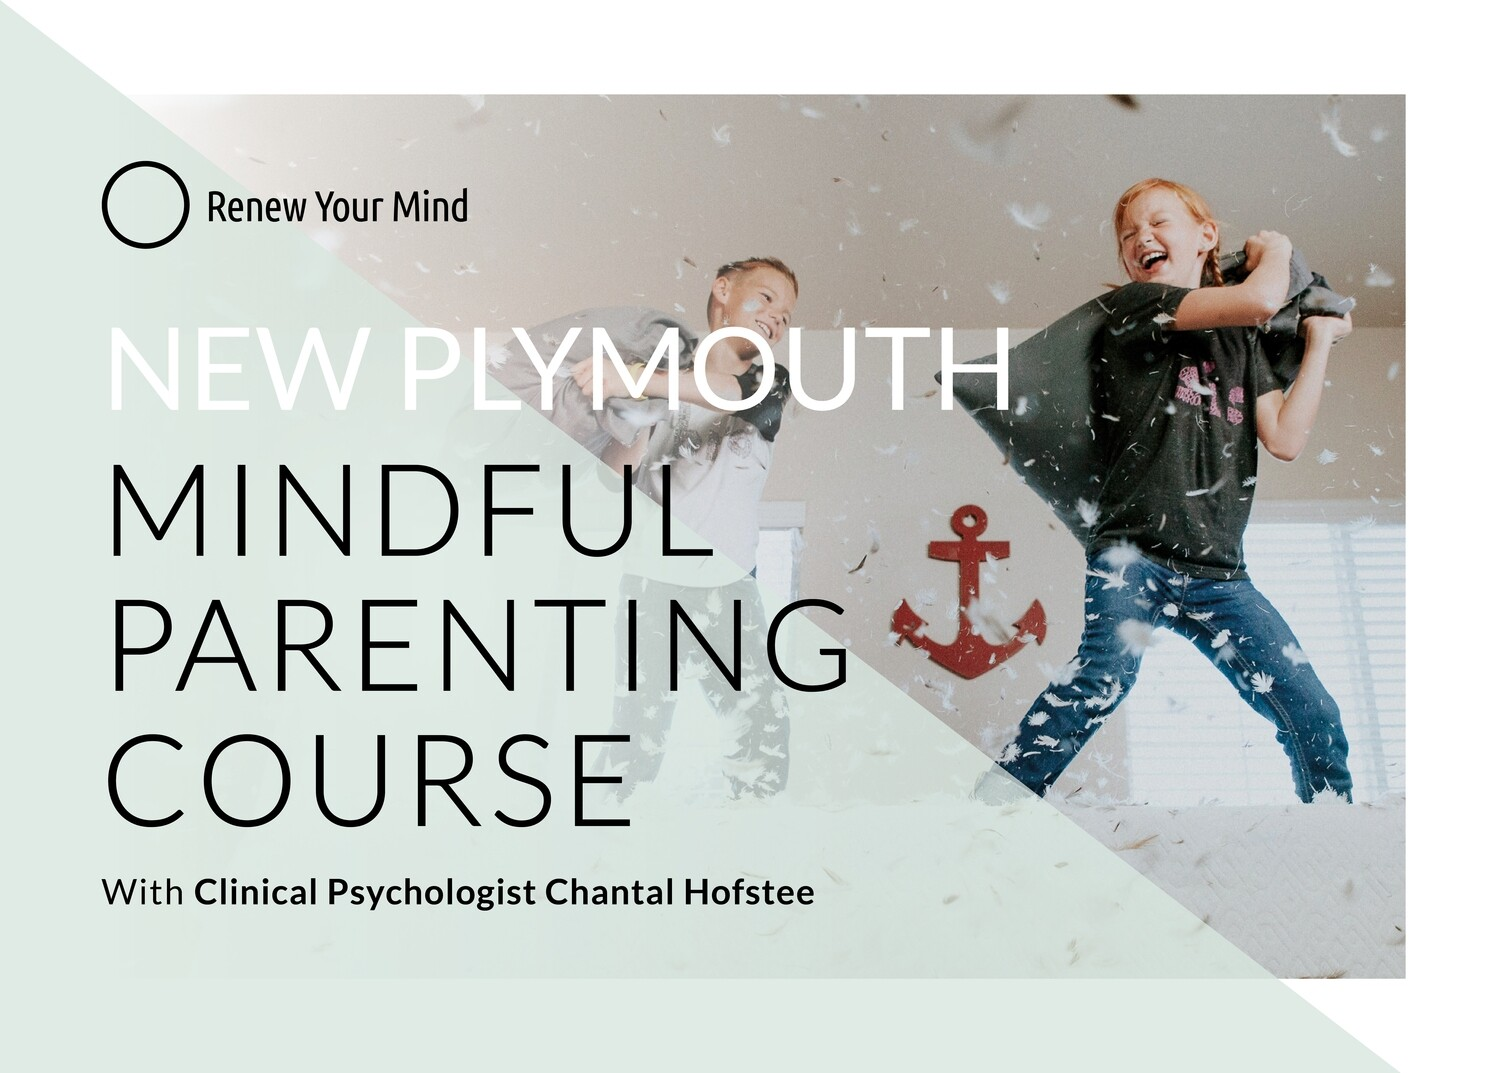 Oakura Mindful Parenting course: 6 session course, starting Wednesday 18 Aug '21